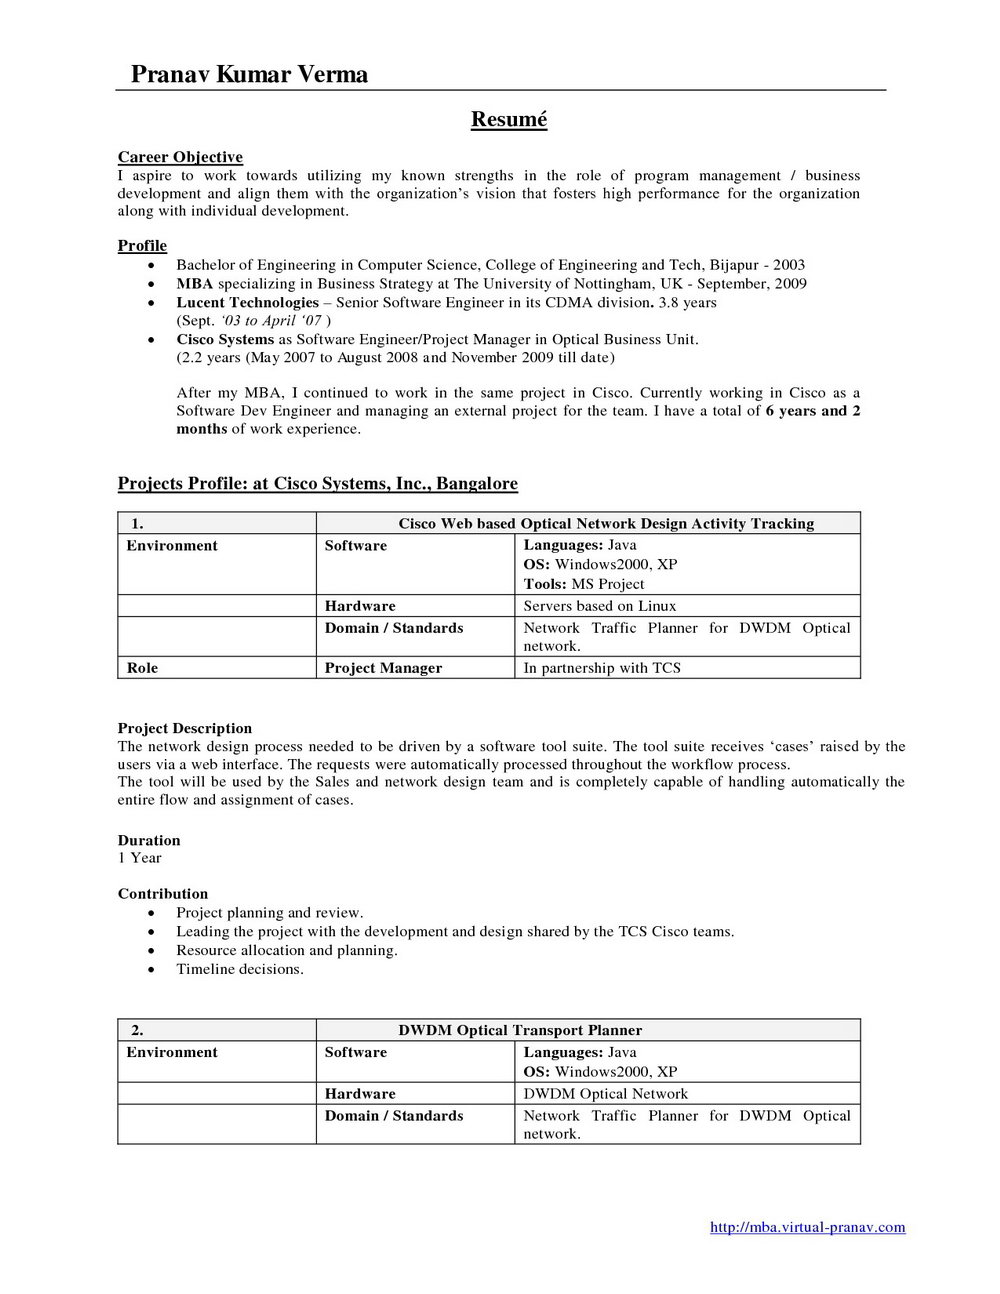 New Resume Format For Freshers 2016